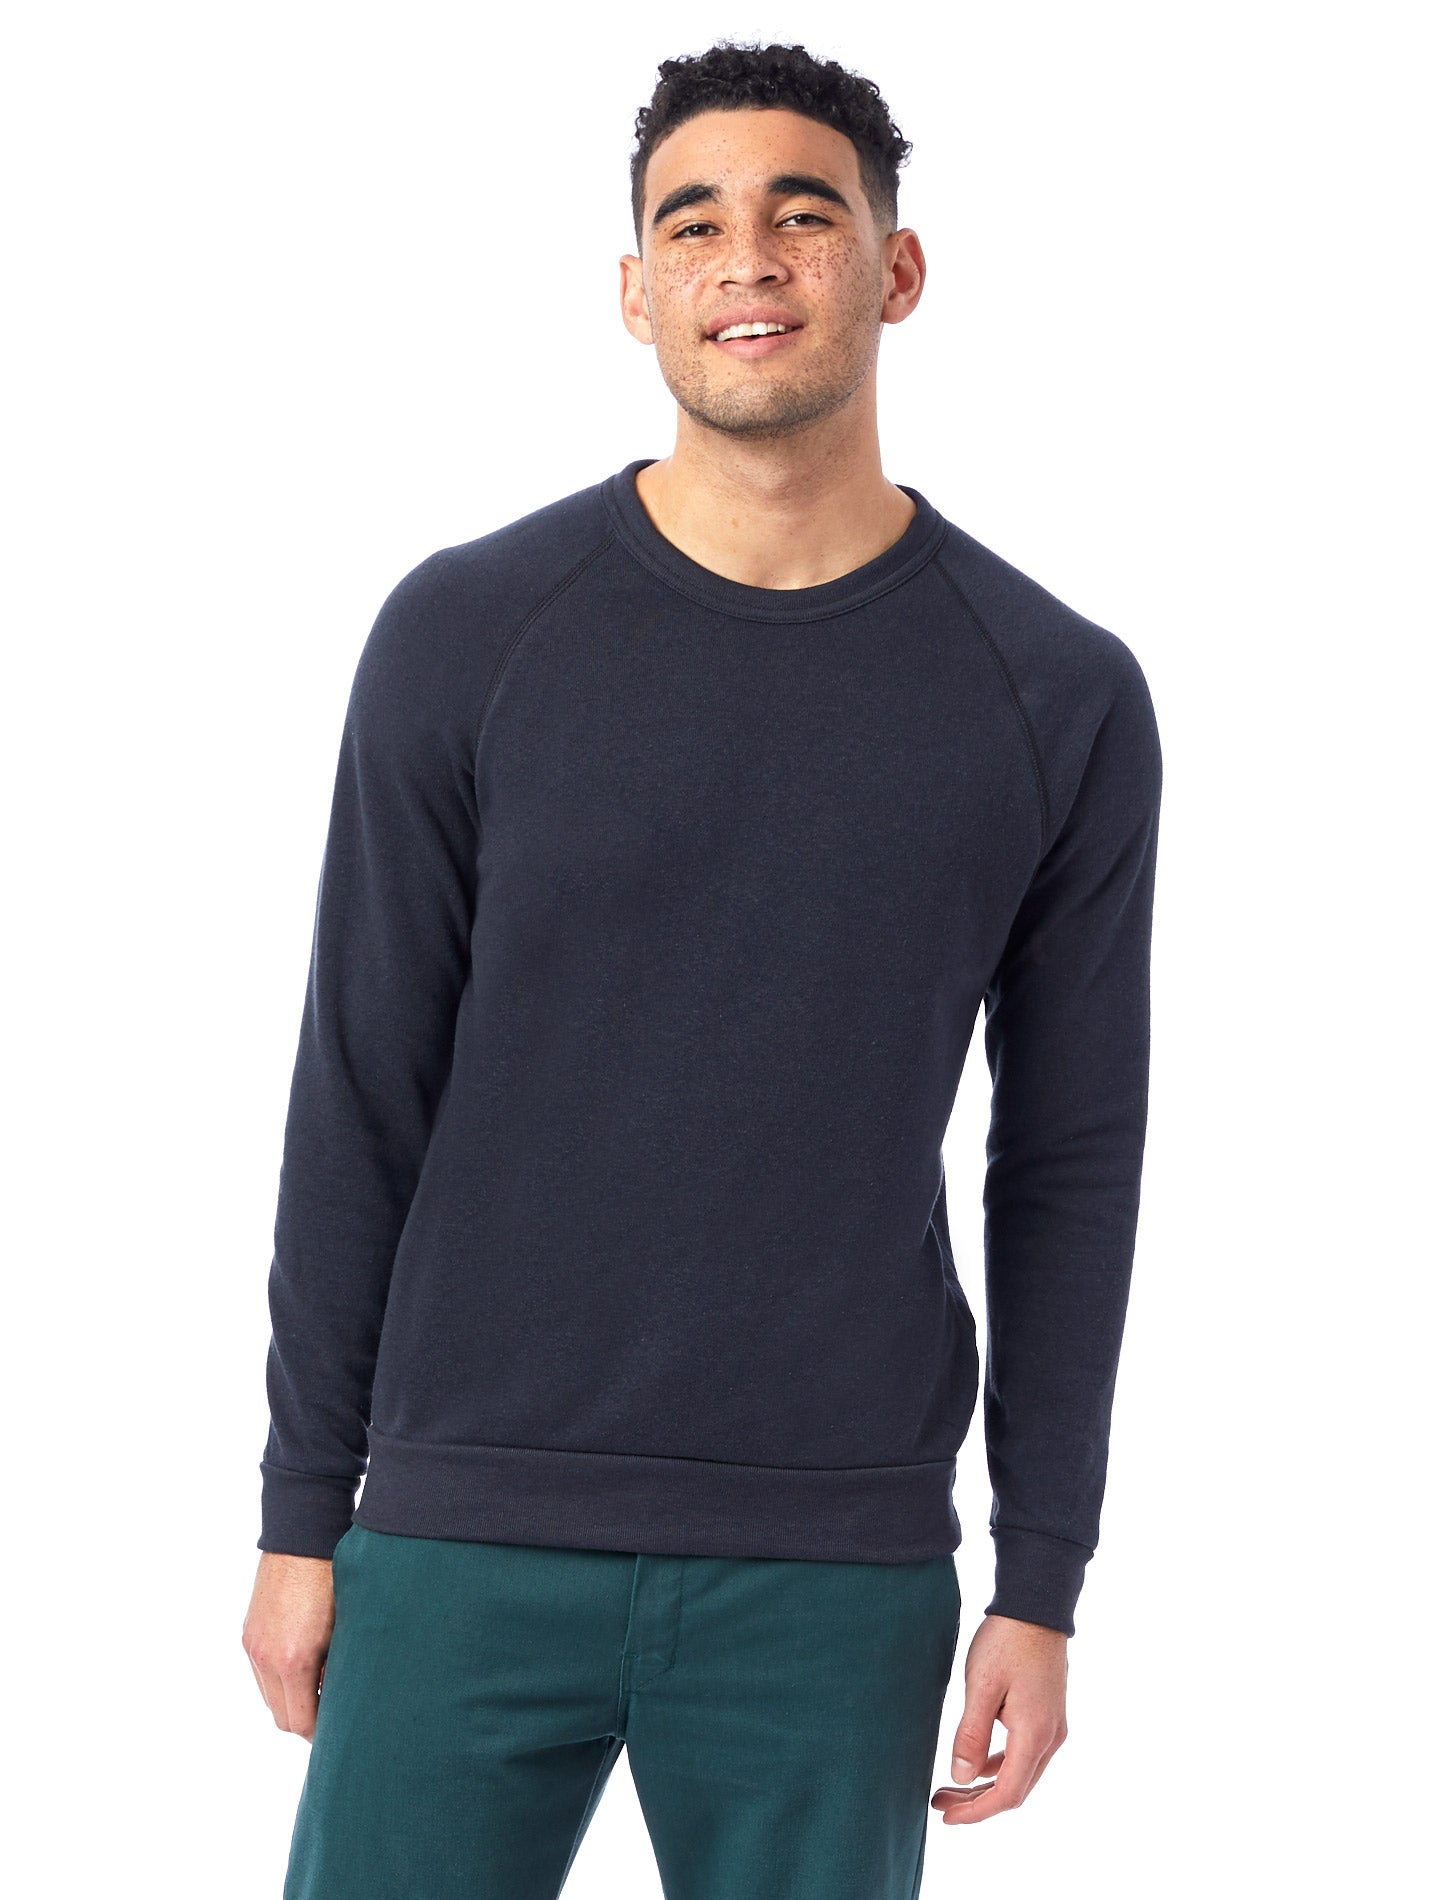 Alternative | Champ Eco-Fleece Sweatshirt in Eco Black